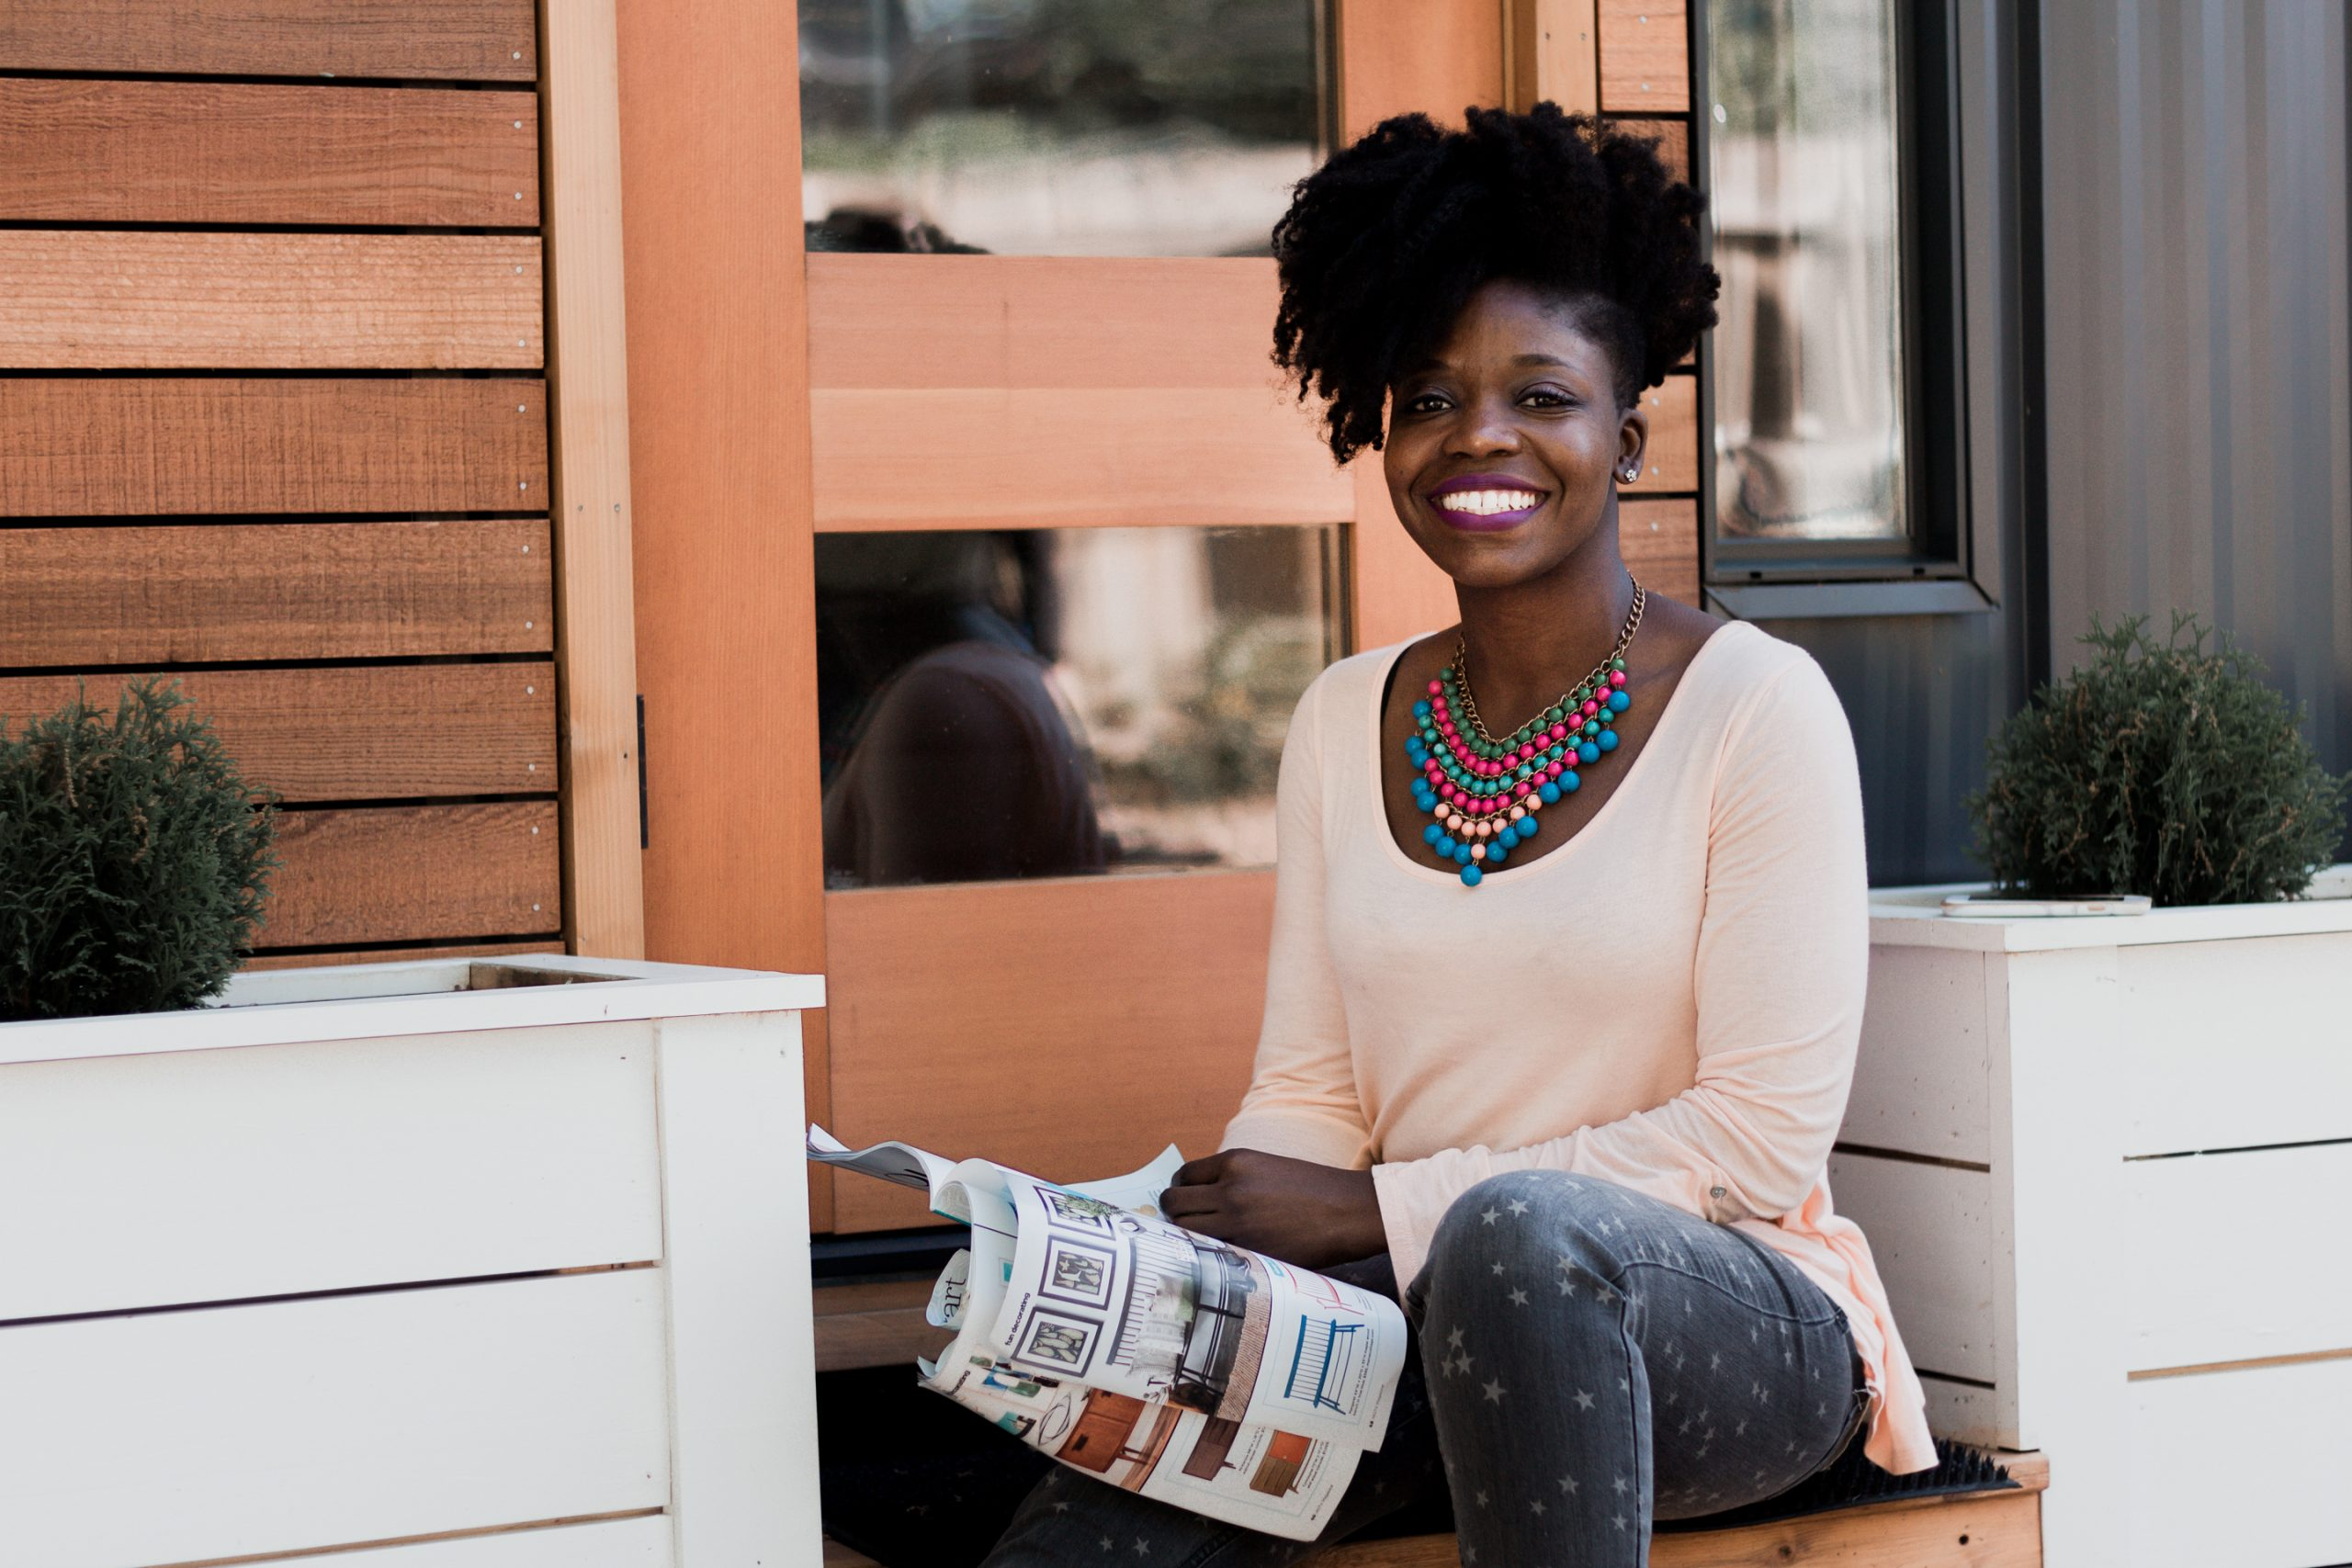 black-woman-smiling-with-book